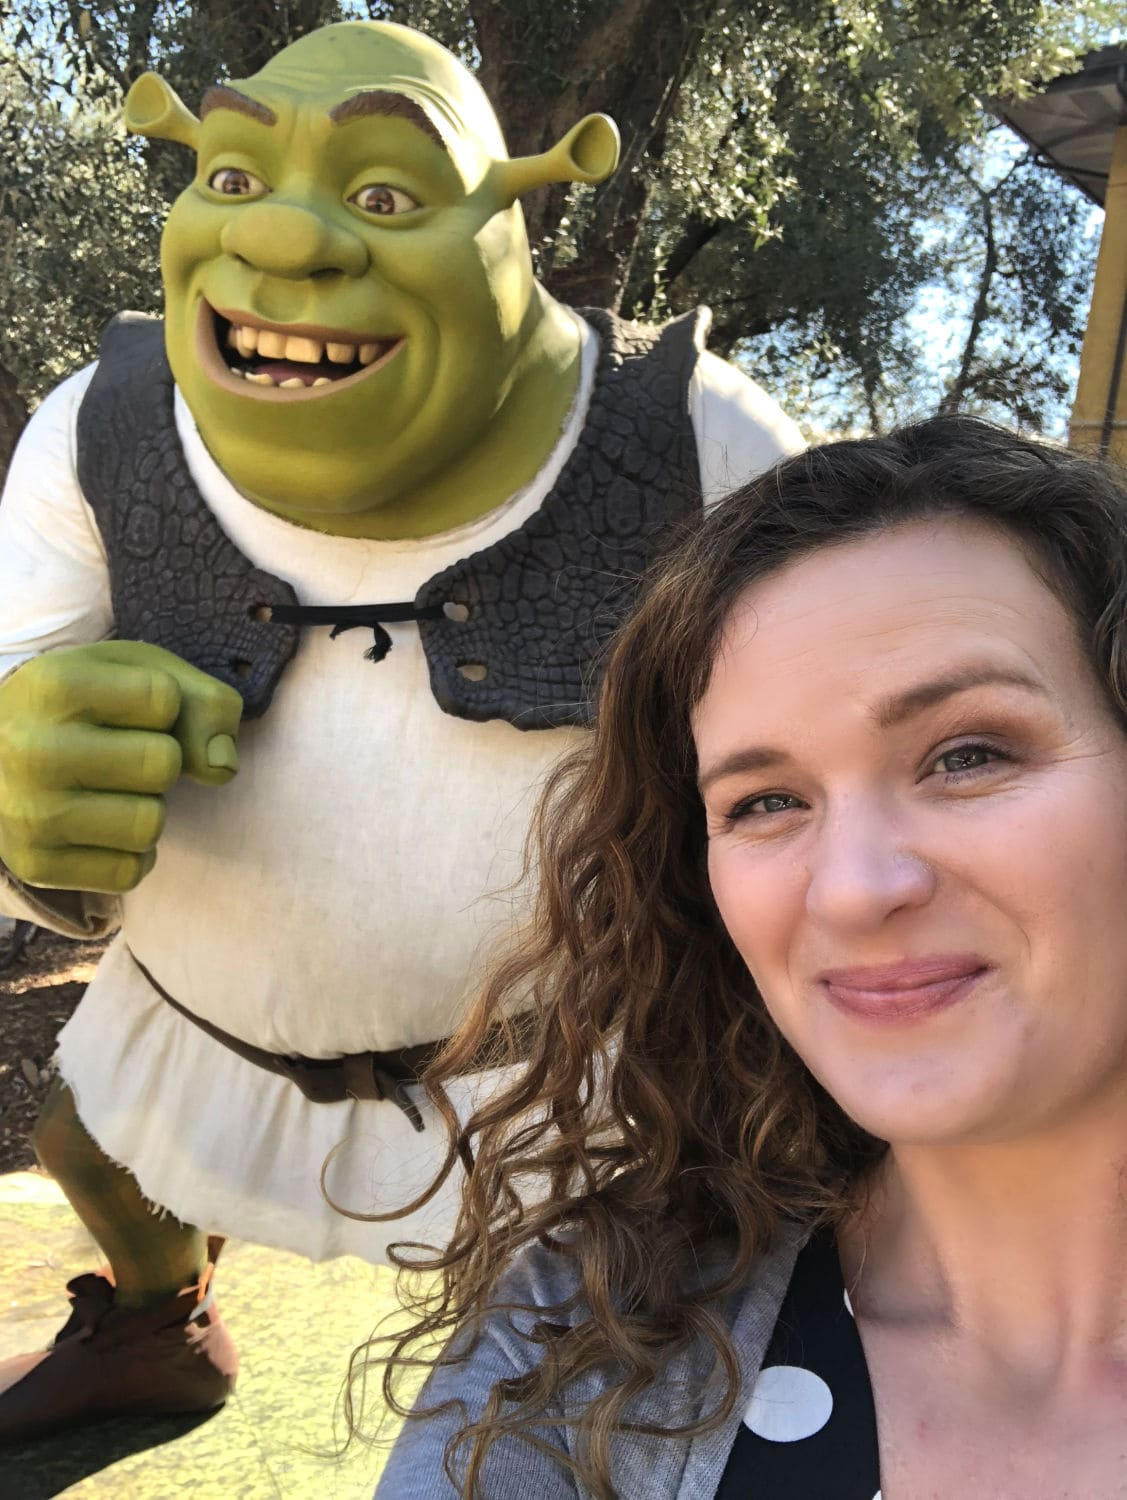 Shrek and I